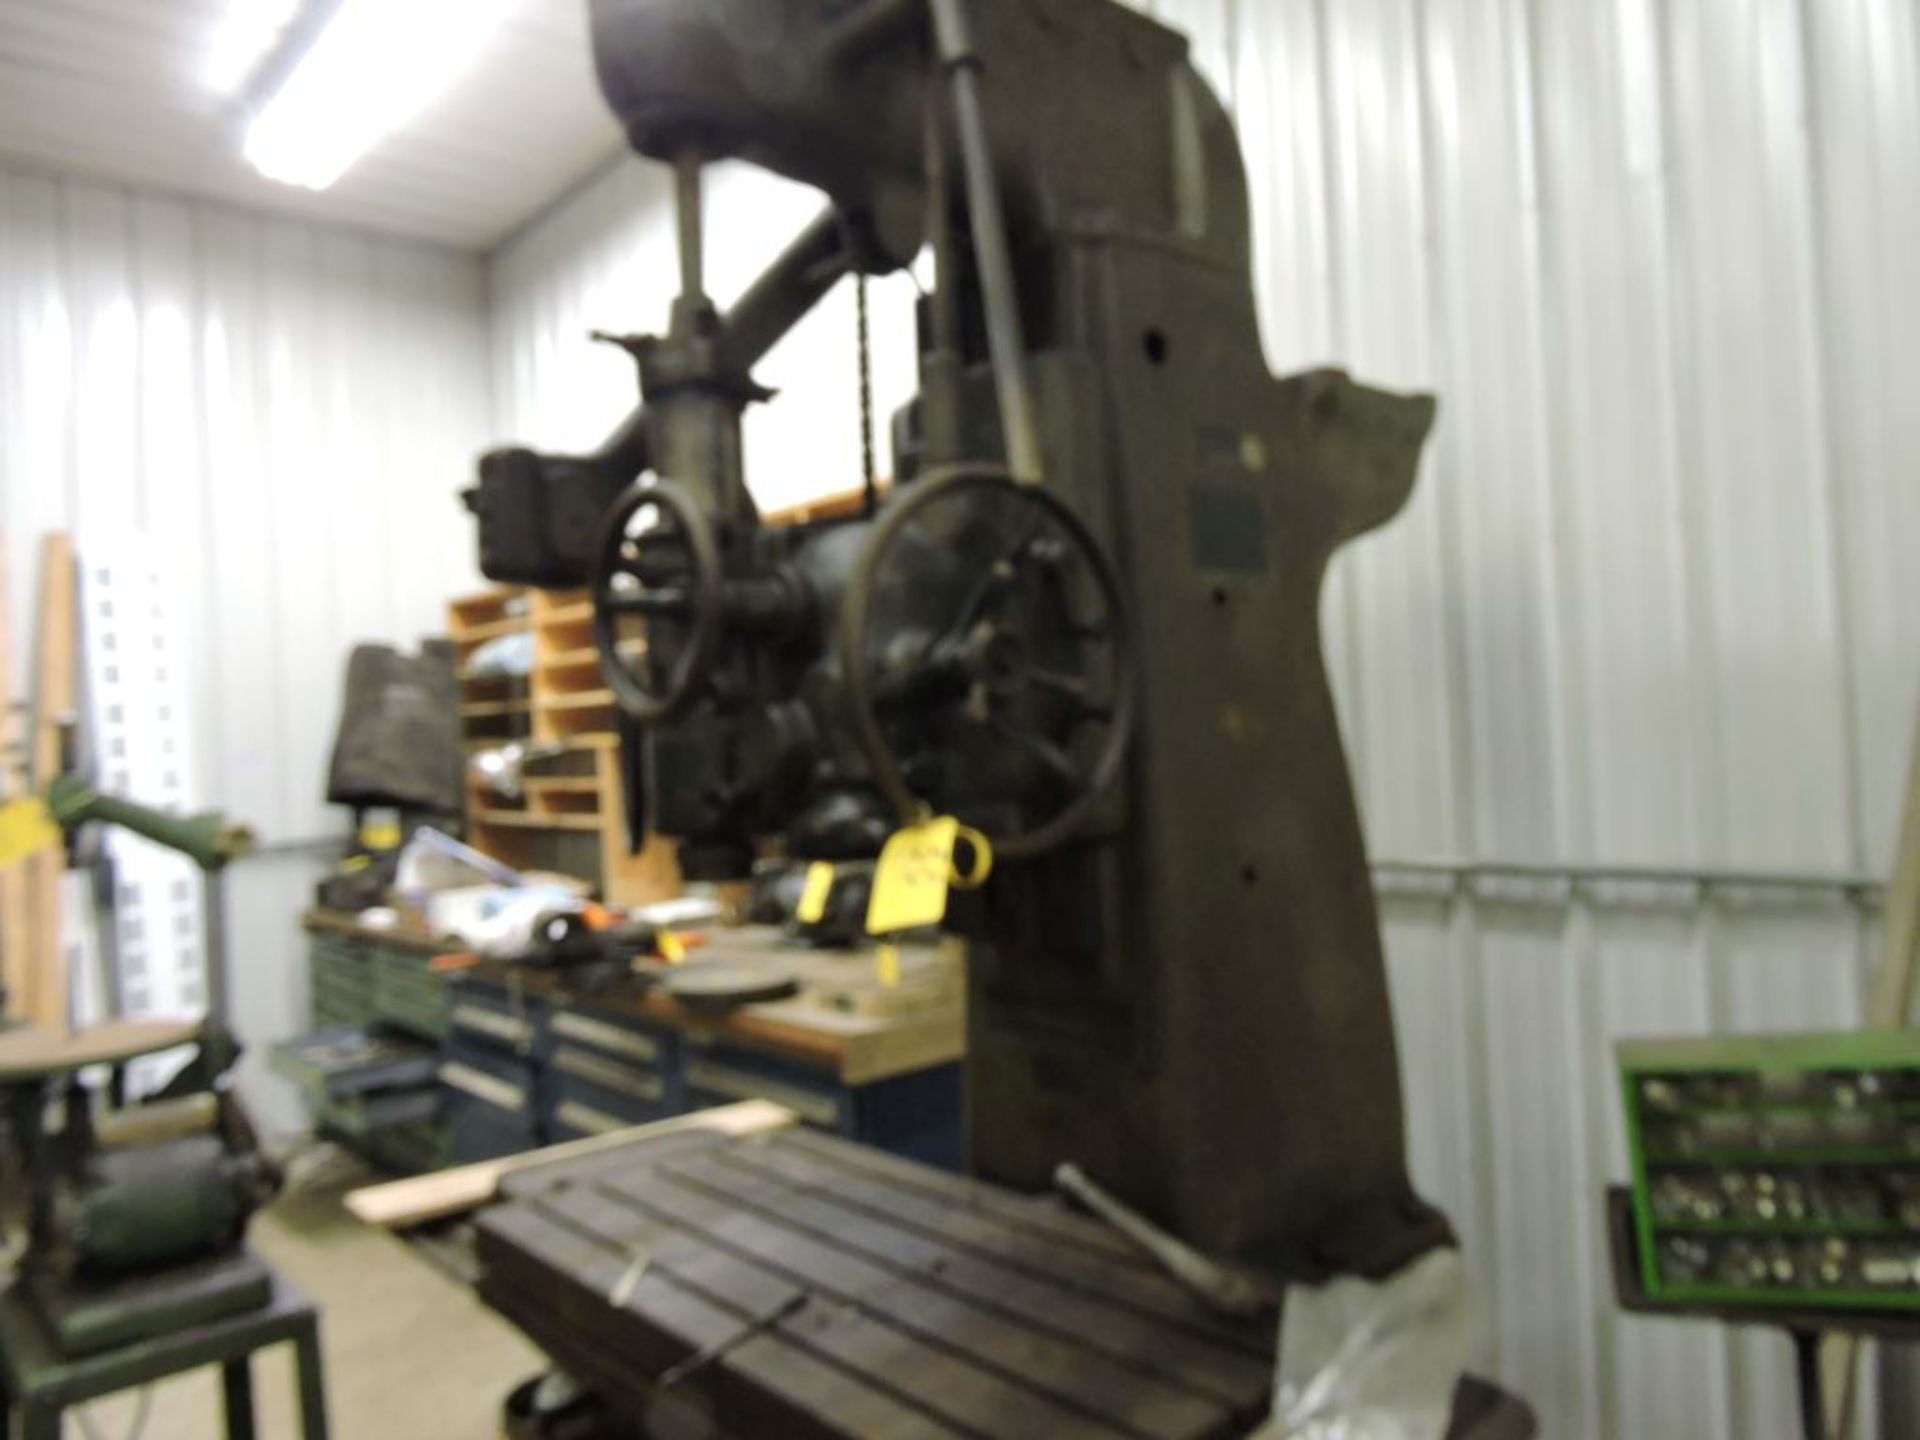 "Pratt Whitney mill No. 2A, jig borer M-1620, sn 1097, 44"" x 22"" bed, (parts machine). - Image 2 of 5"